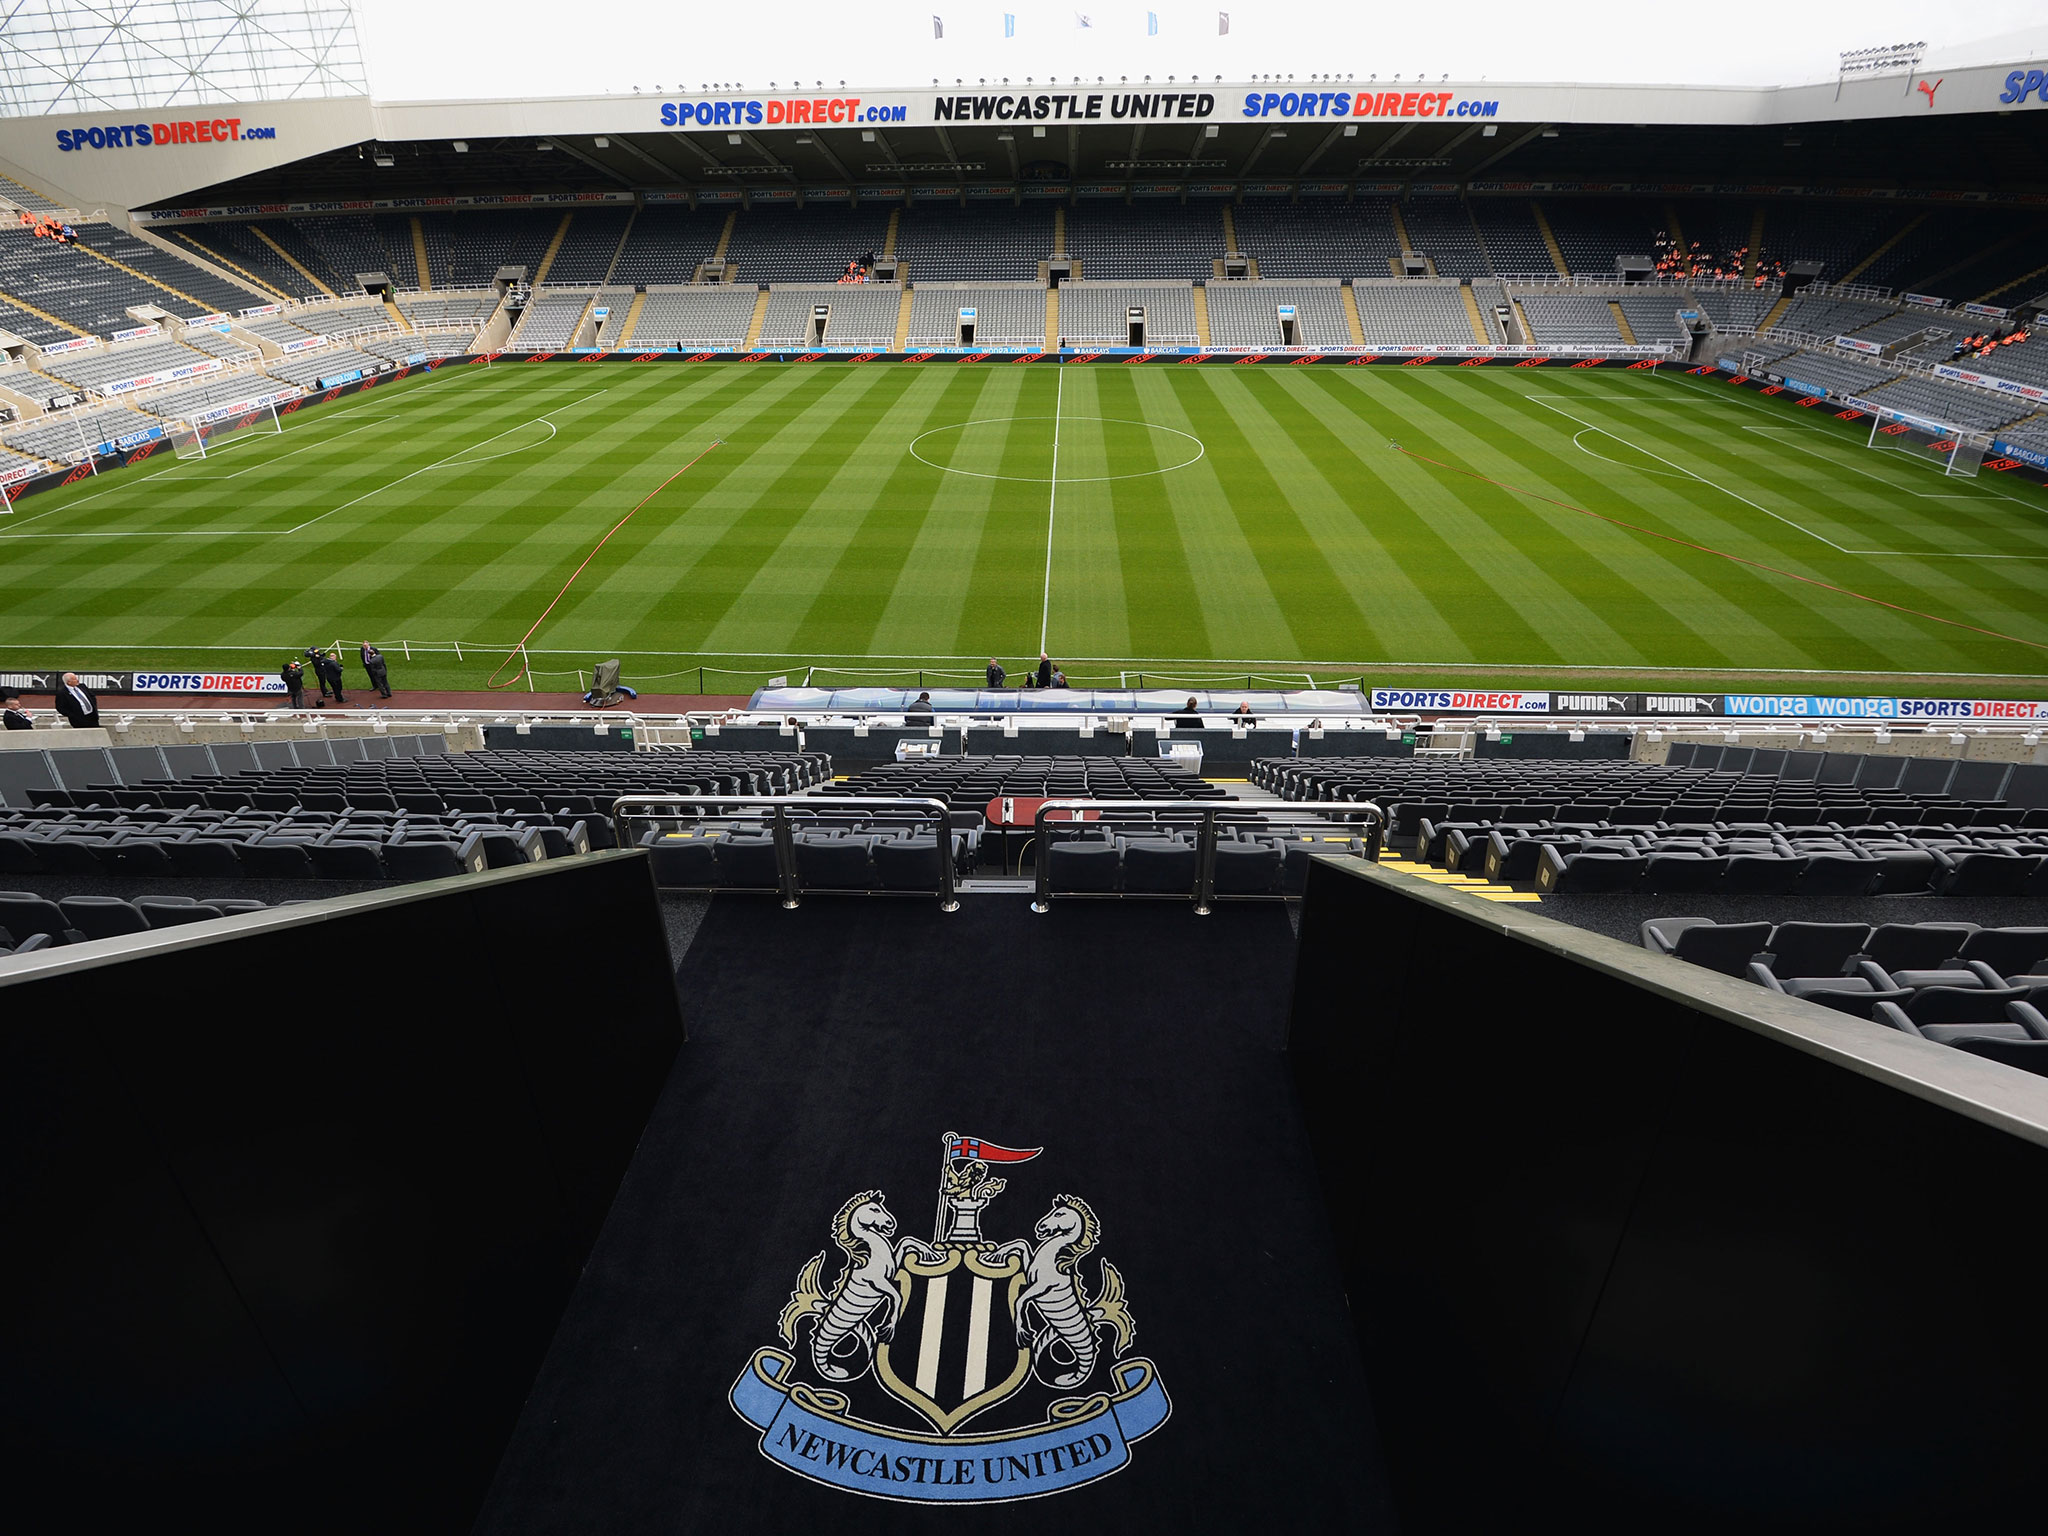 Clemson Tigers Iphone Wallpaper Download Newcastle United Live Wallpaper Gallery